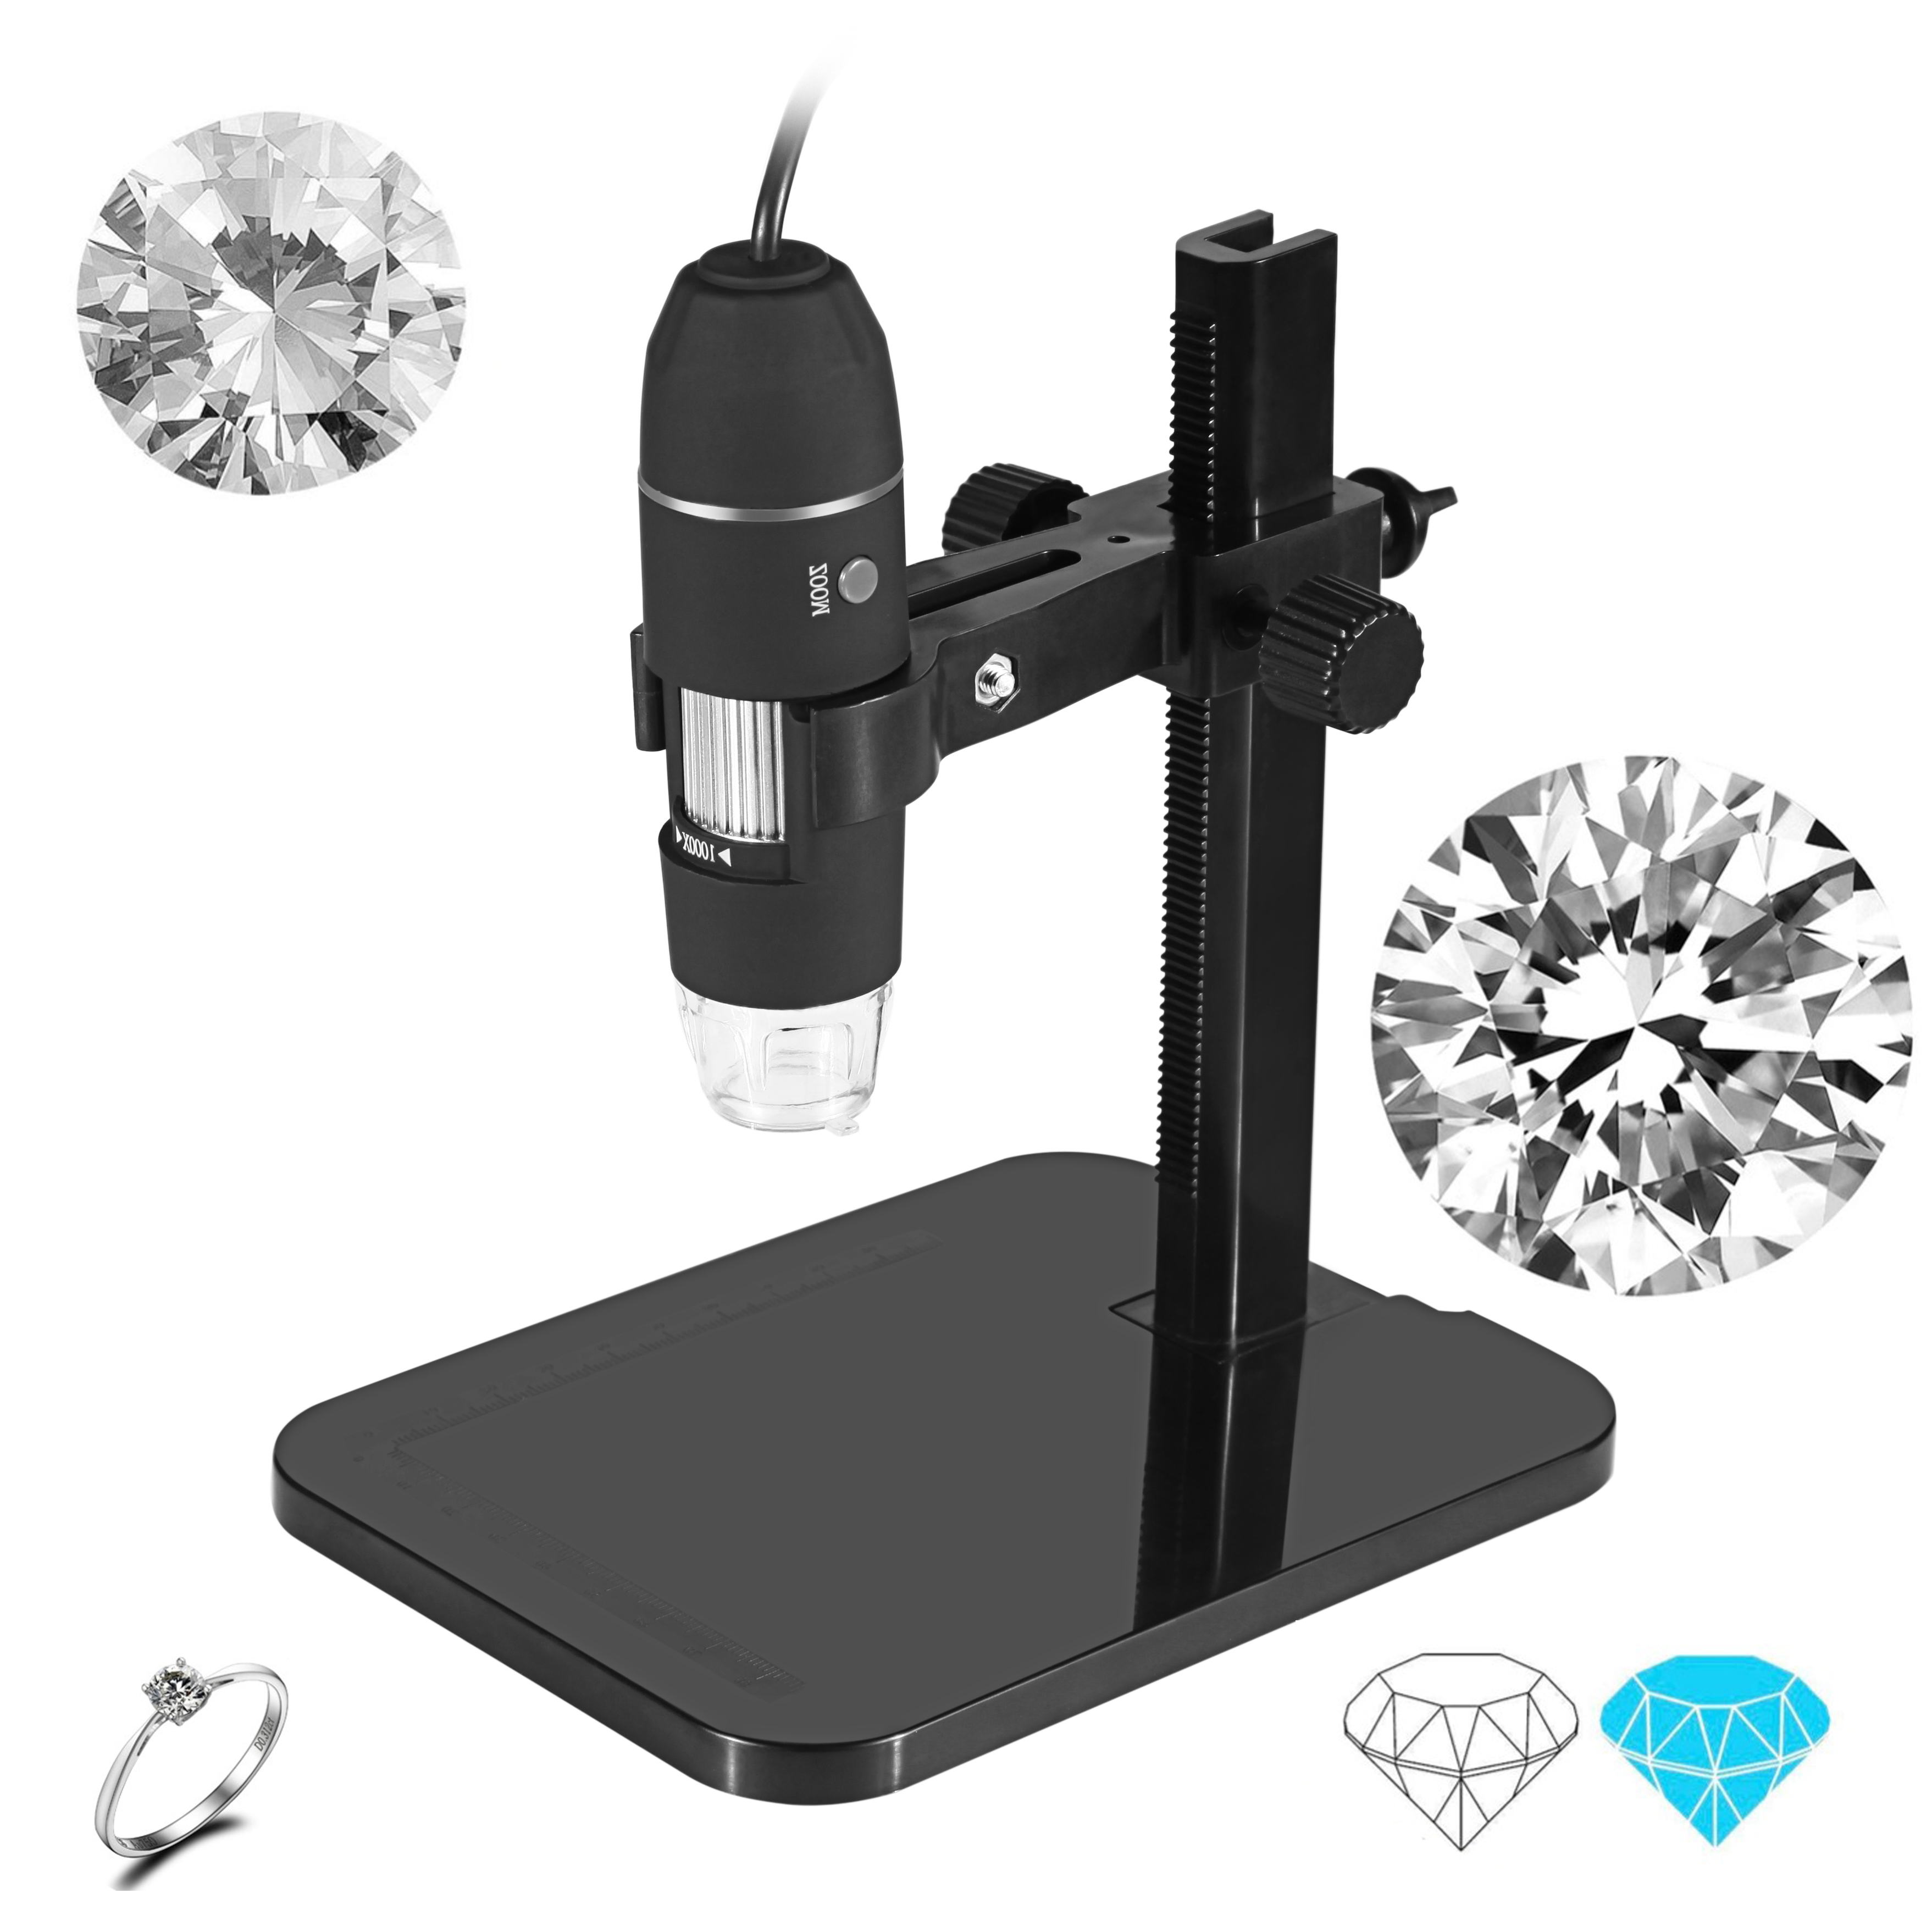 USB Digital Microscope 1000X 8 LED 2MP Professional Electronic Microscope Endoscope Zoom Camera Magnifier+ Lift Stand Tools